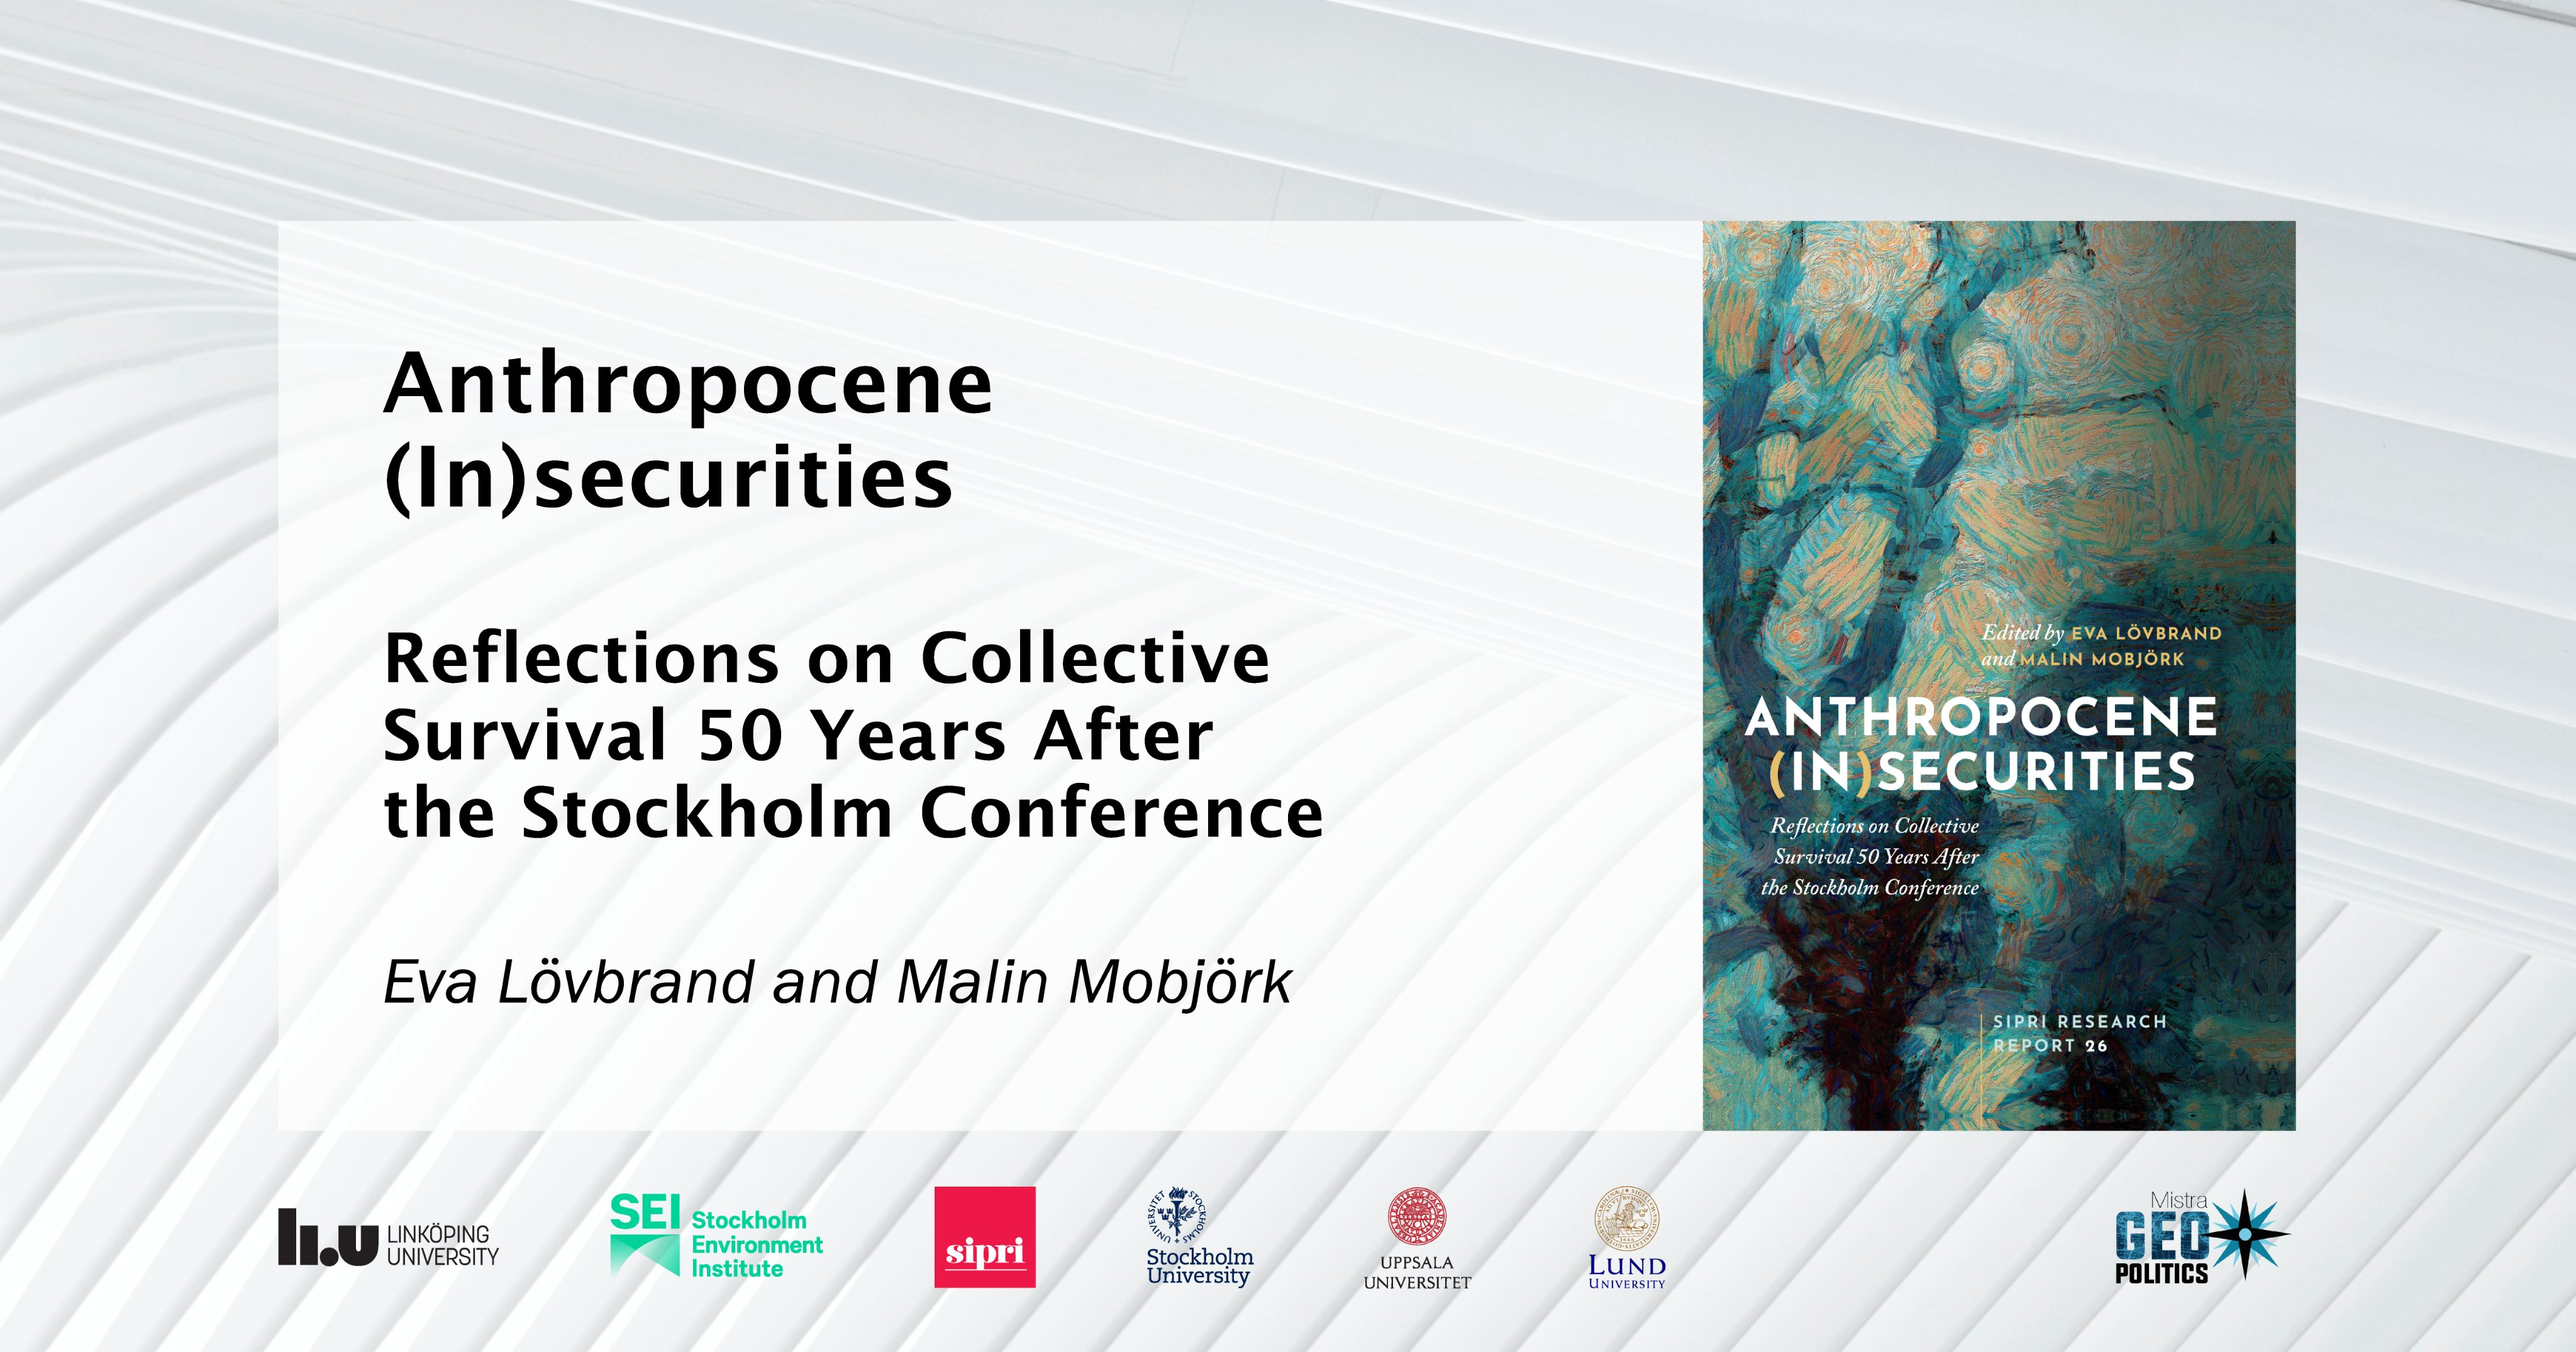 Anthropocene (In)securities: Reflections on Collective Survival 50 Years After the Stockholm Conference